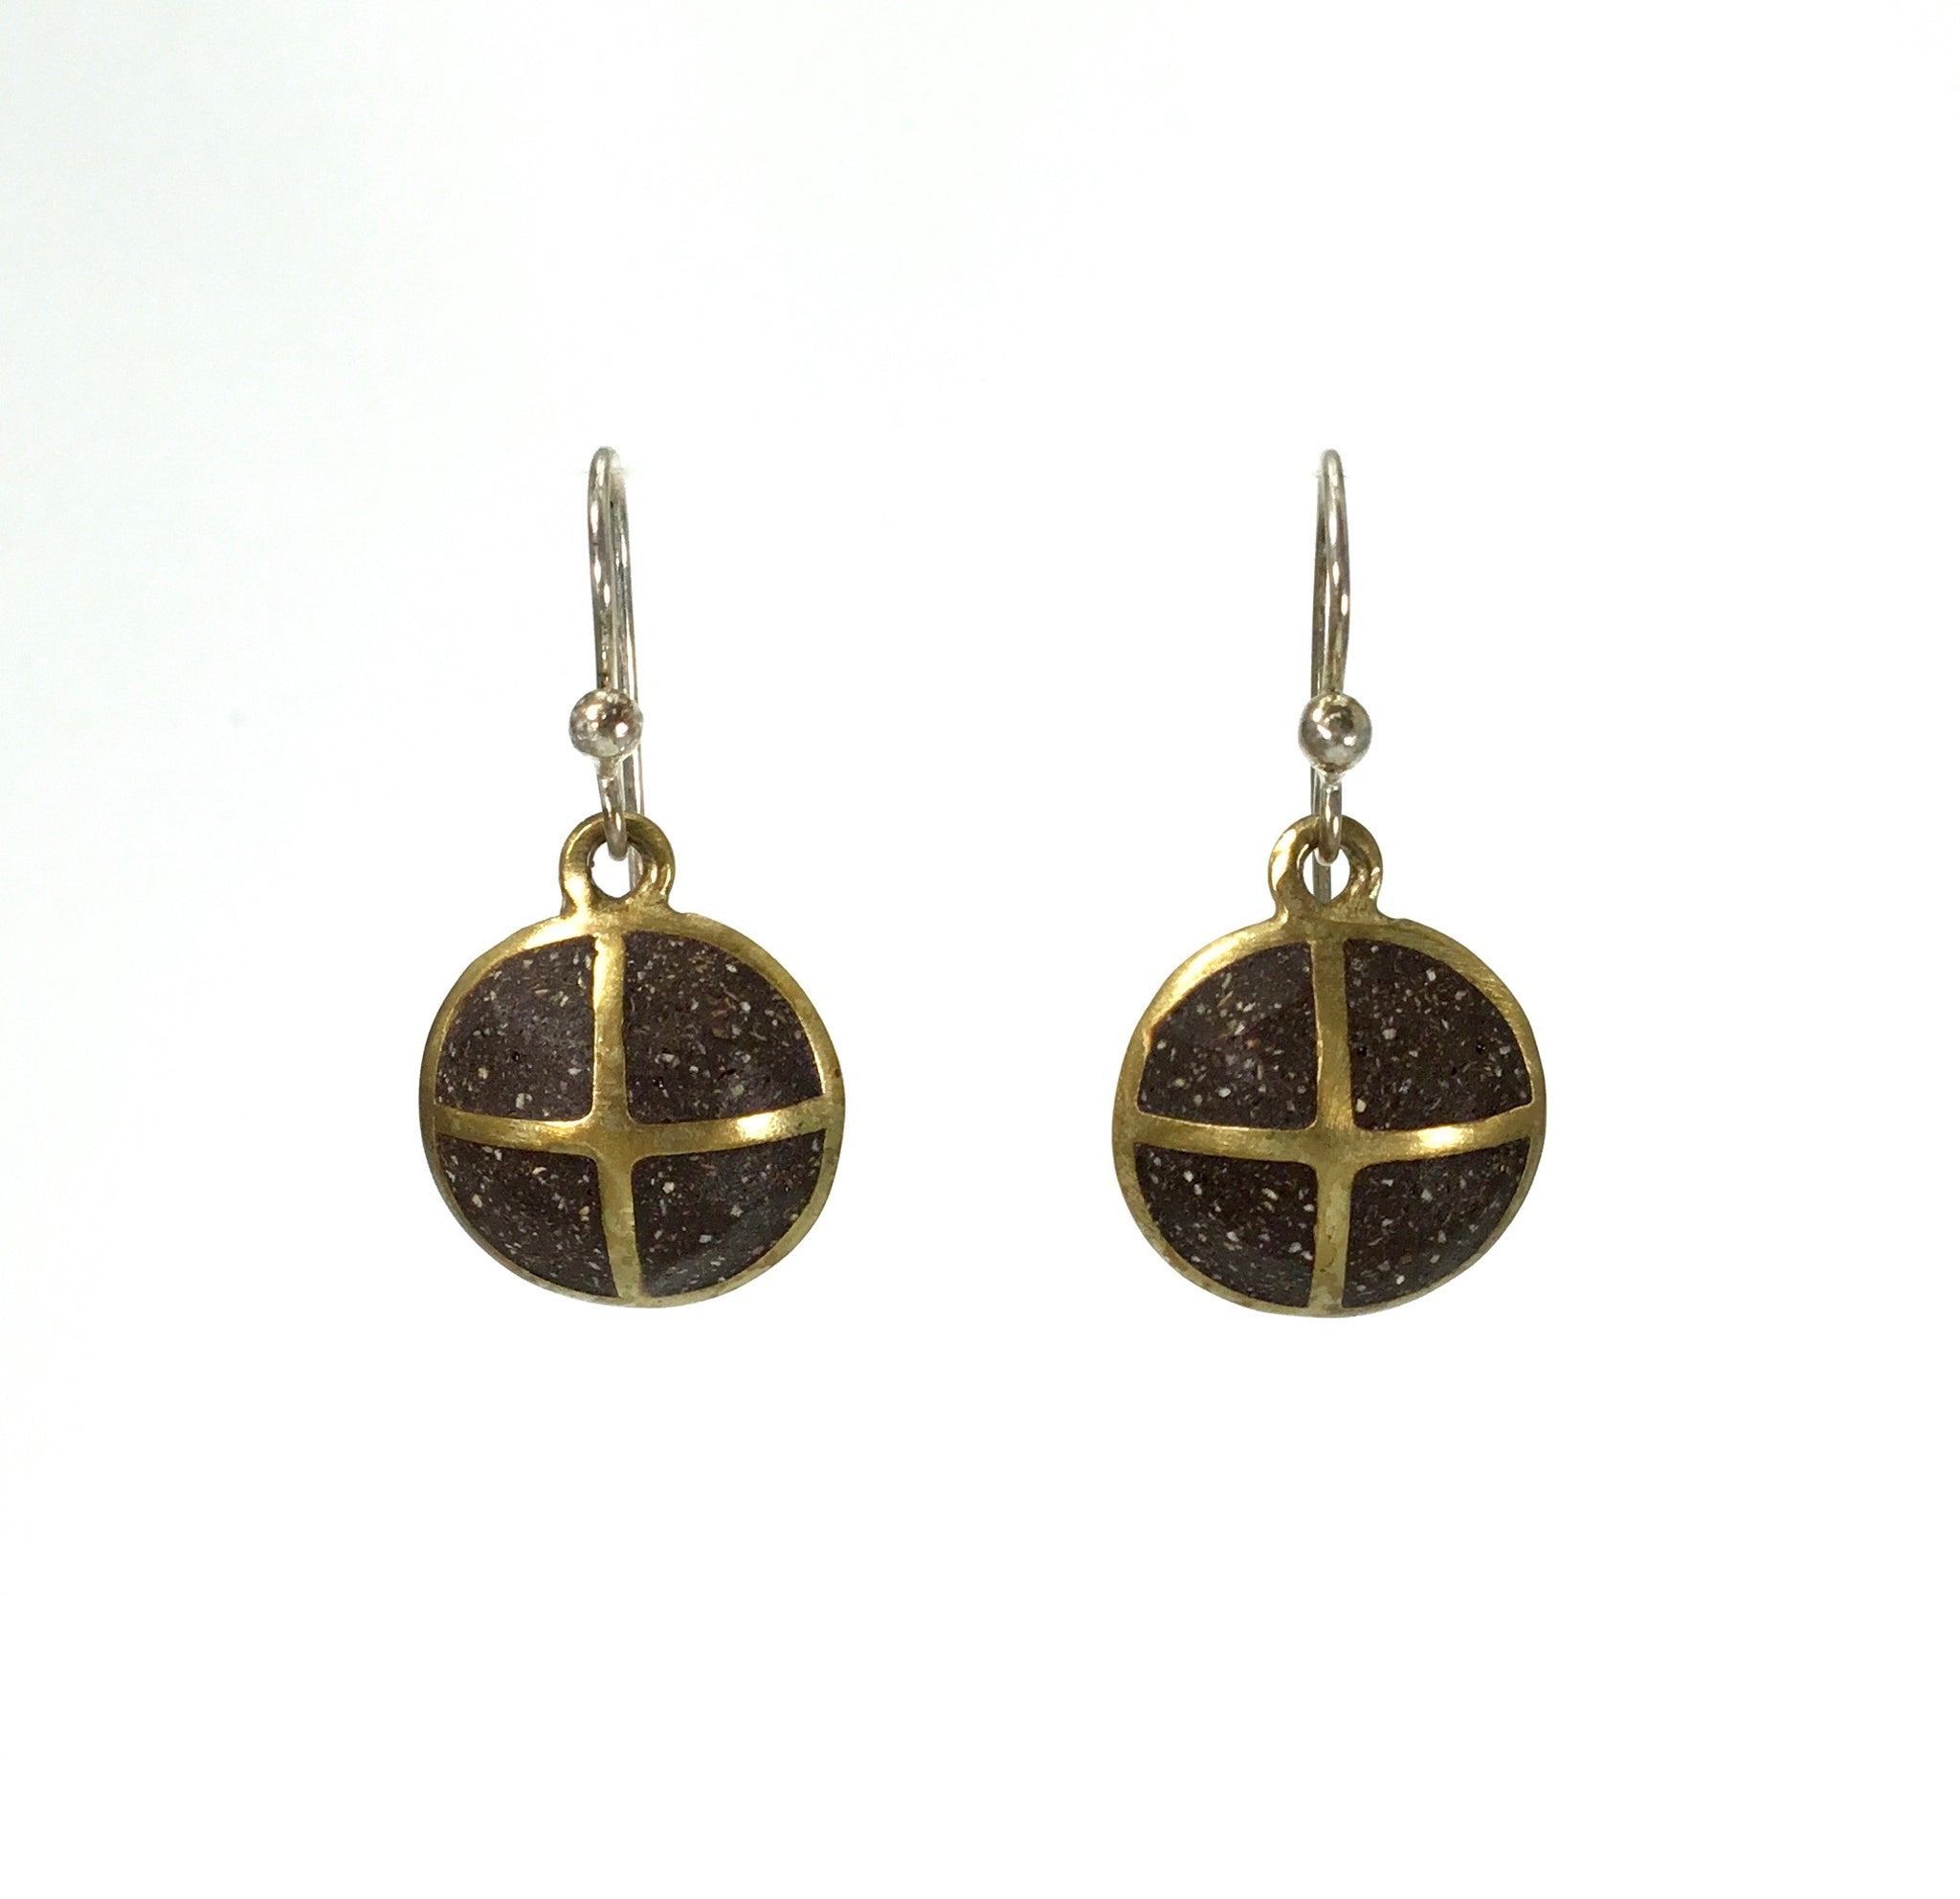 David Urso Brown Tiny Symbol Earrings